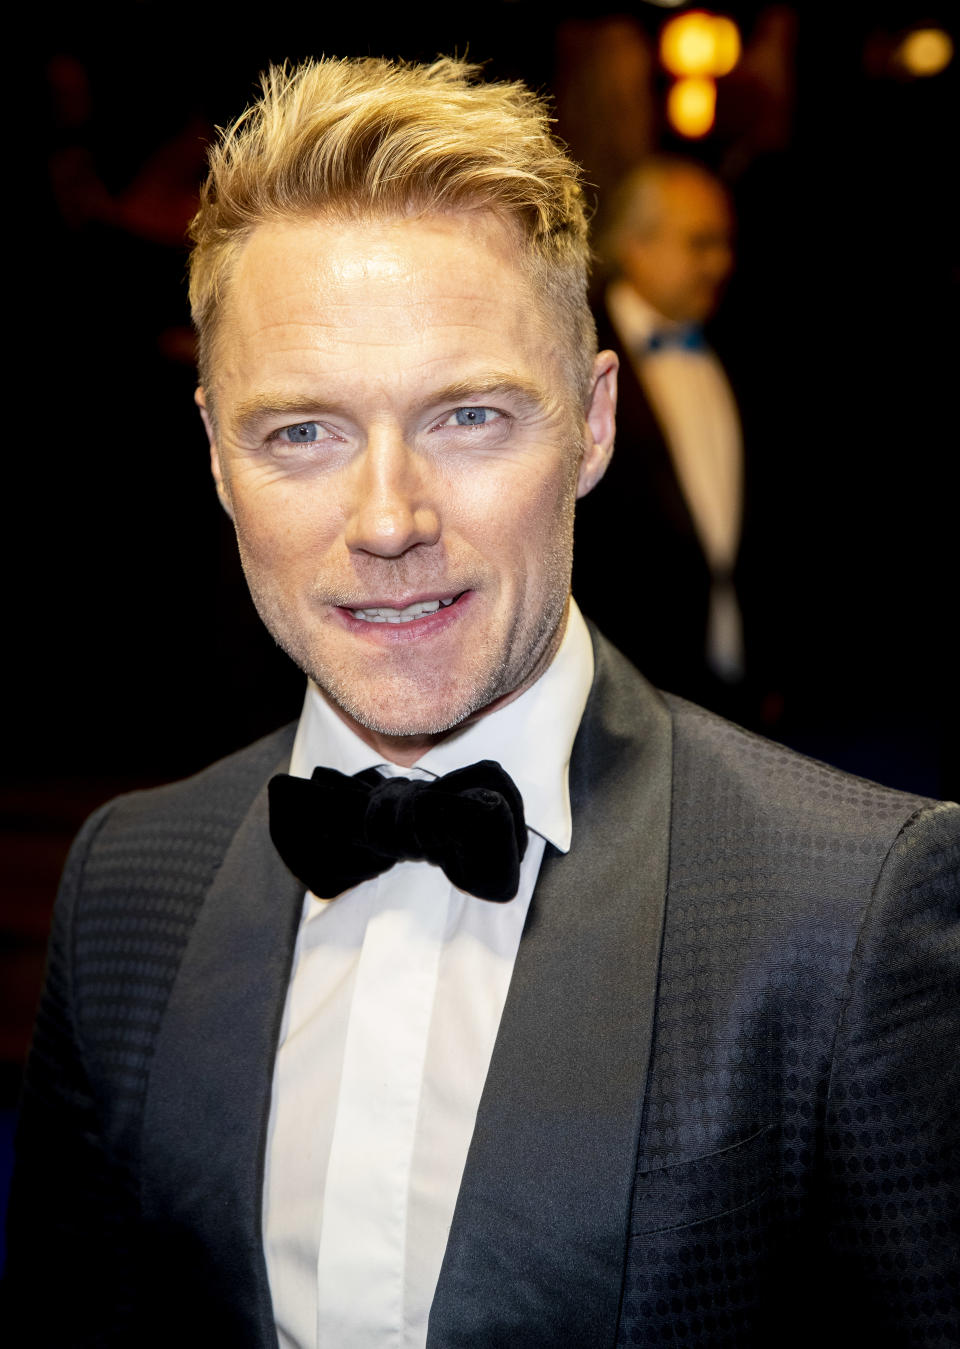 Ronan Keating said a number of articles had contained private information. (Photo by Patrick van Katwijk/Getty Images)